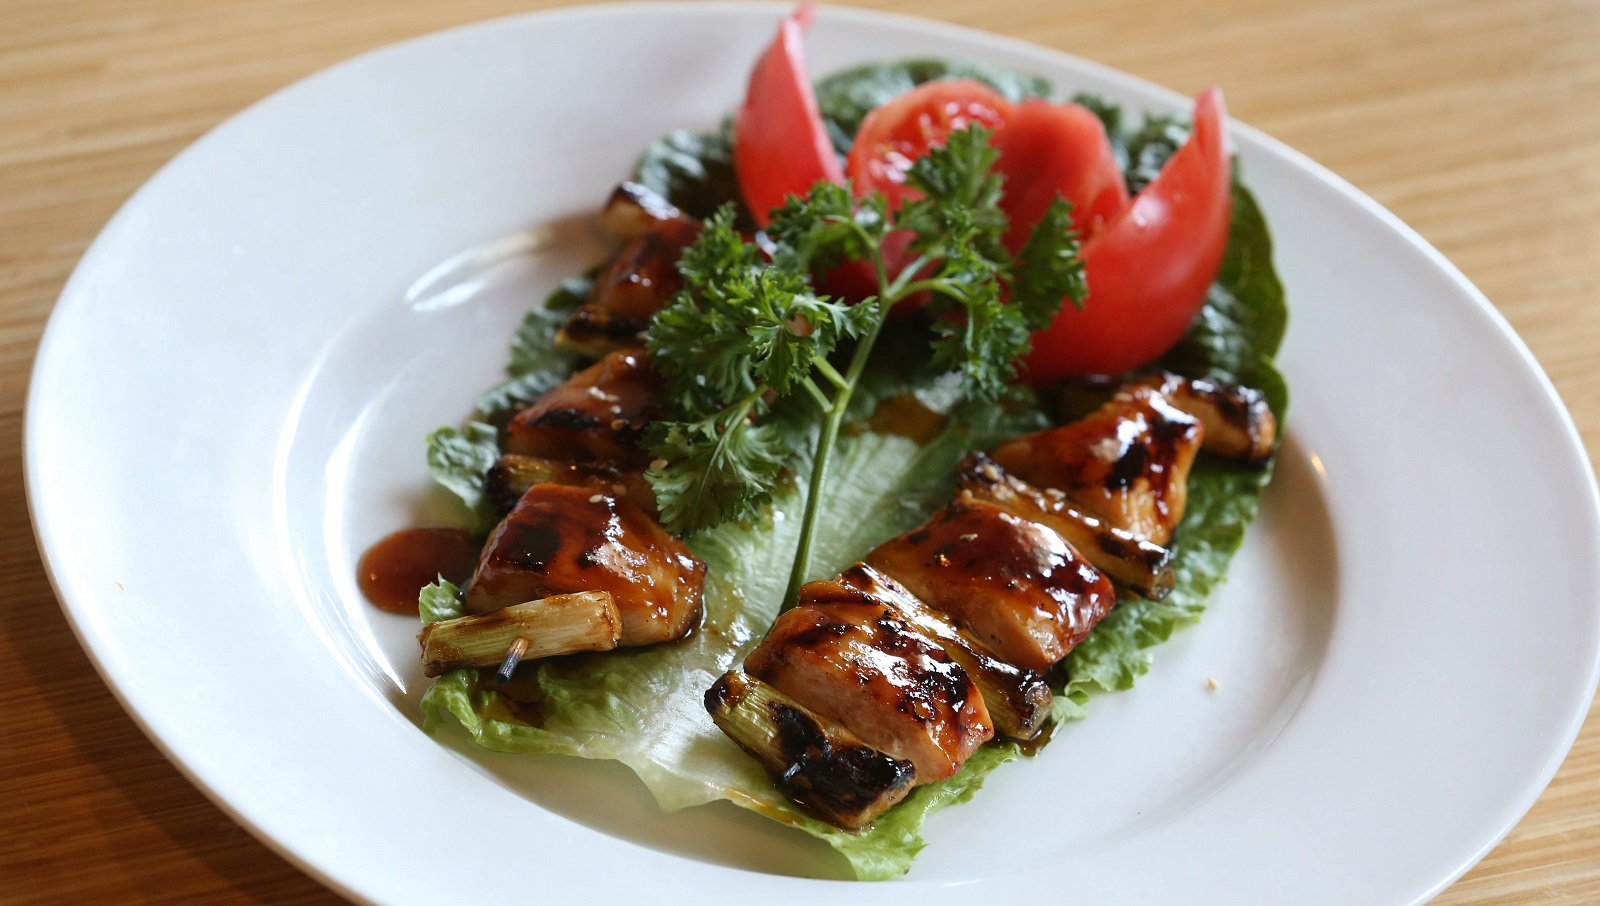 The Yakitoi appetizer is two skewers of barbecue chicken. (Sharon Cantillon/Buffalo News)